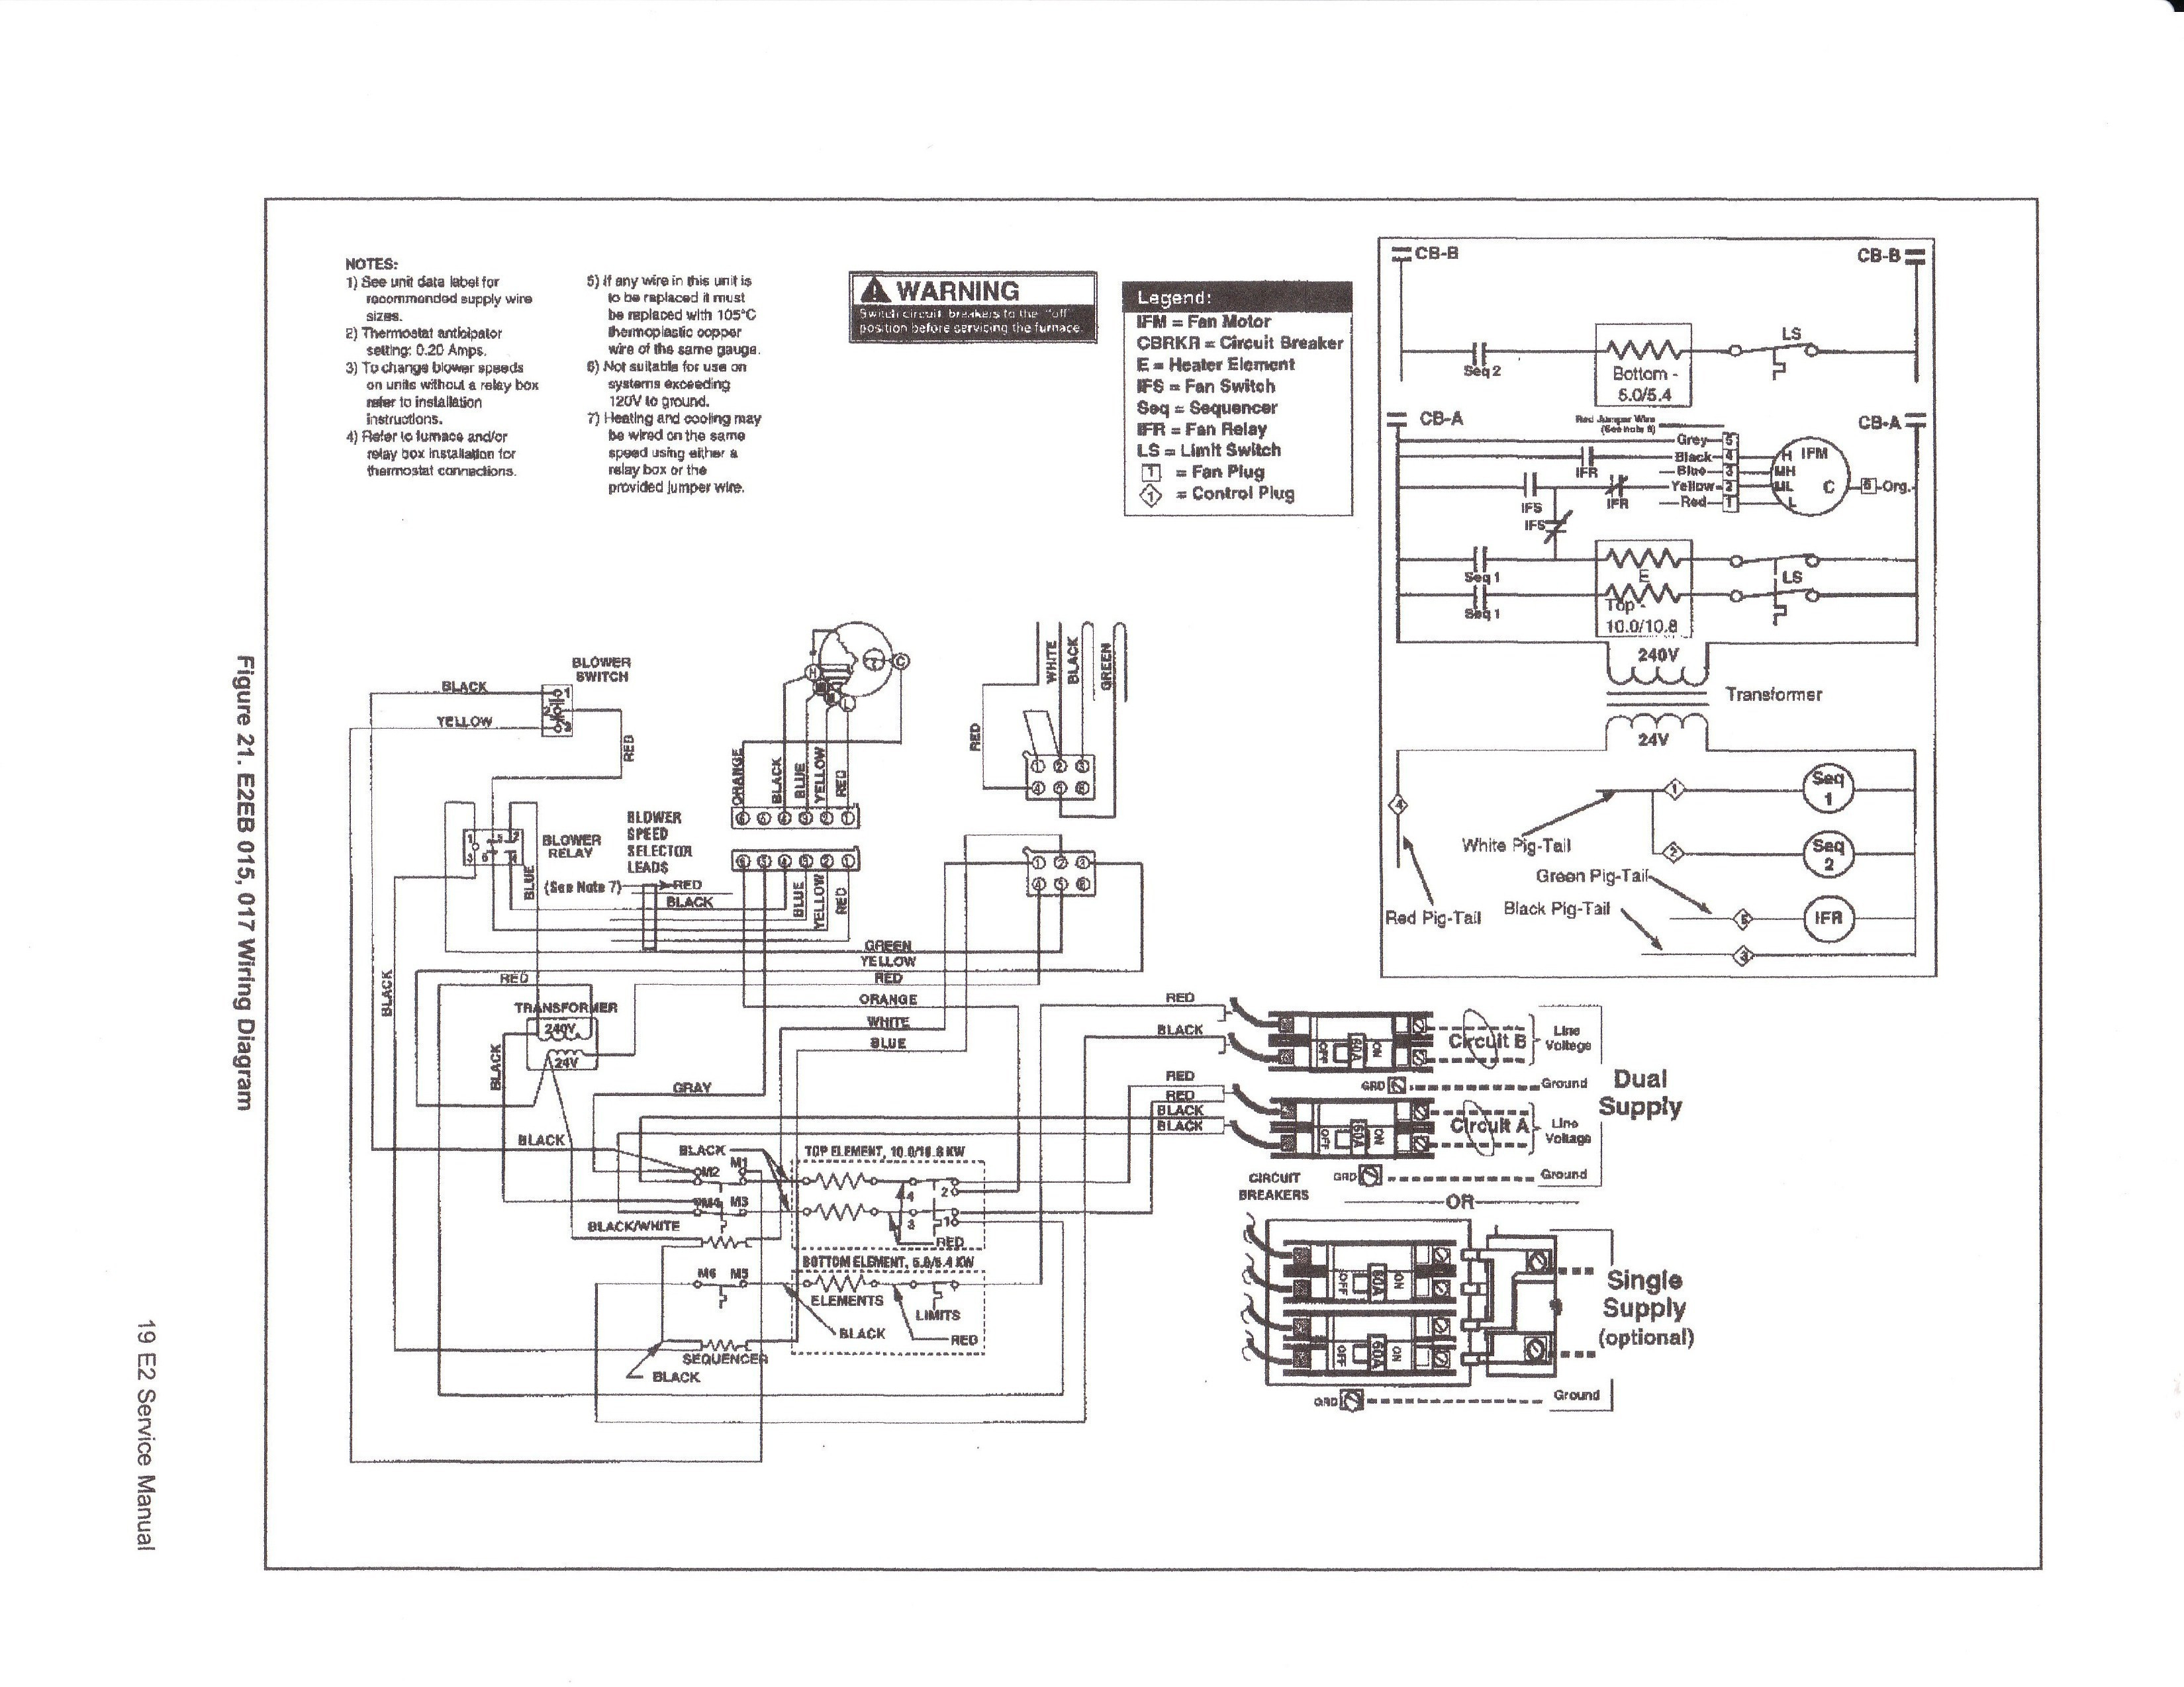 e1eh 015ha wiring diagram Download-E1eh 015ha Wiring Diagram Inspirational Nordyne Ac Wiring Diagram & Daewoo Ac Wiring Diagram Wiring Diagrams 20-m